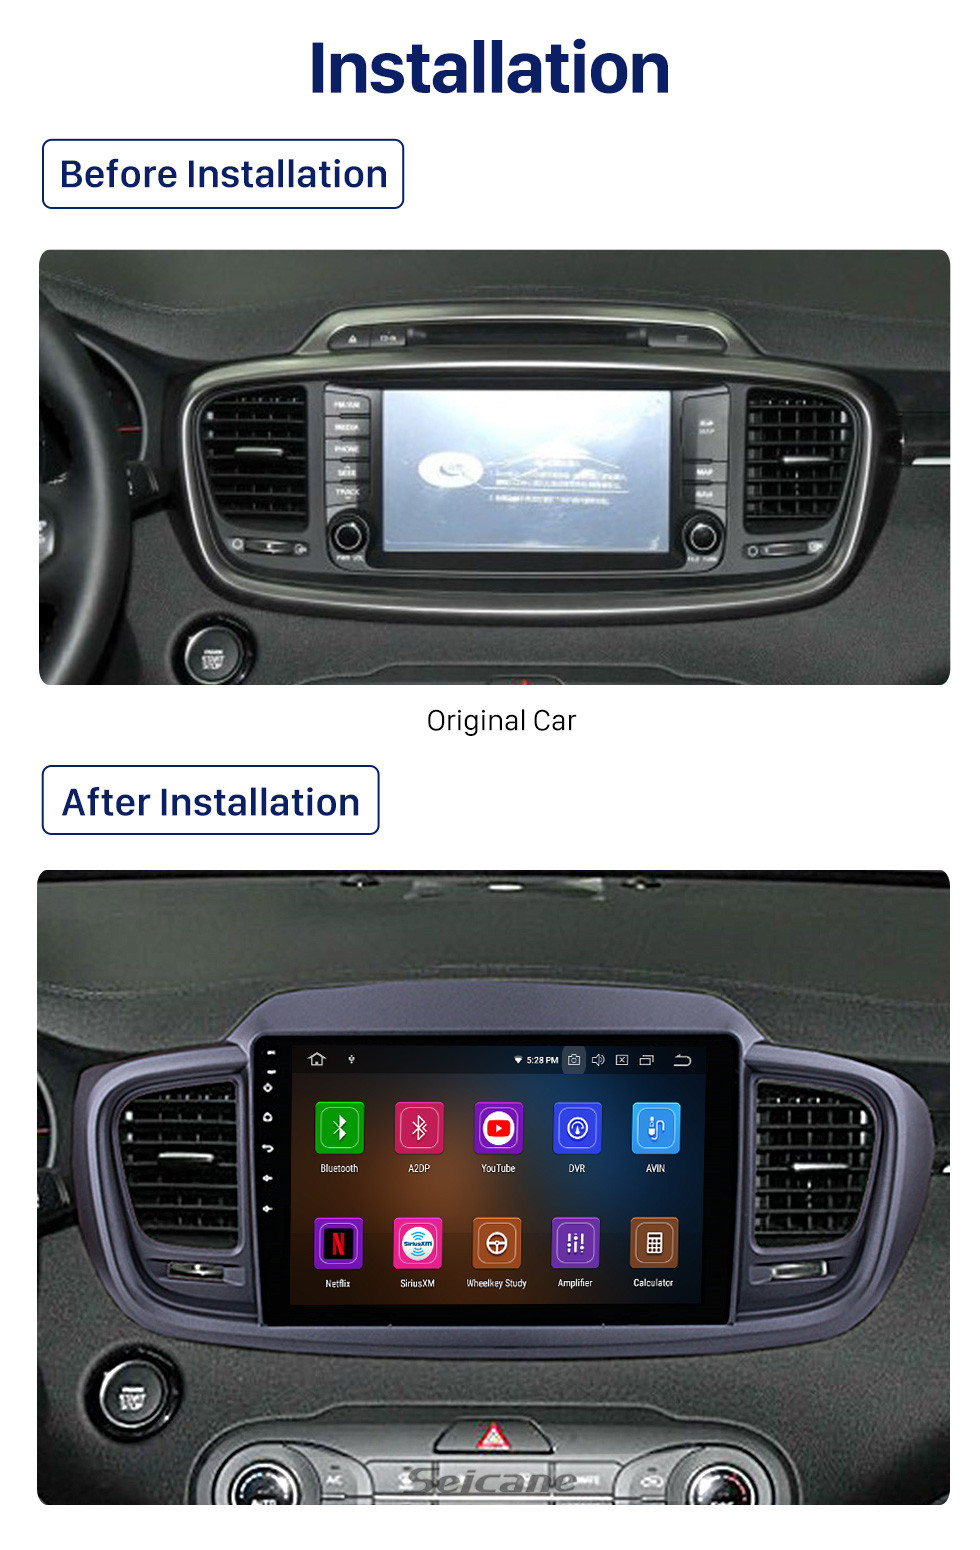 Seicane 9 inch For 2015 2016 Kia Sorento Android 10.0 Radio bluetooth GPS Navigation System with Backup Camera TPMS Steering Wheel Control OBD2 DVR Rearview camera digital TV